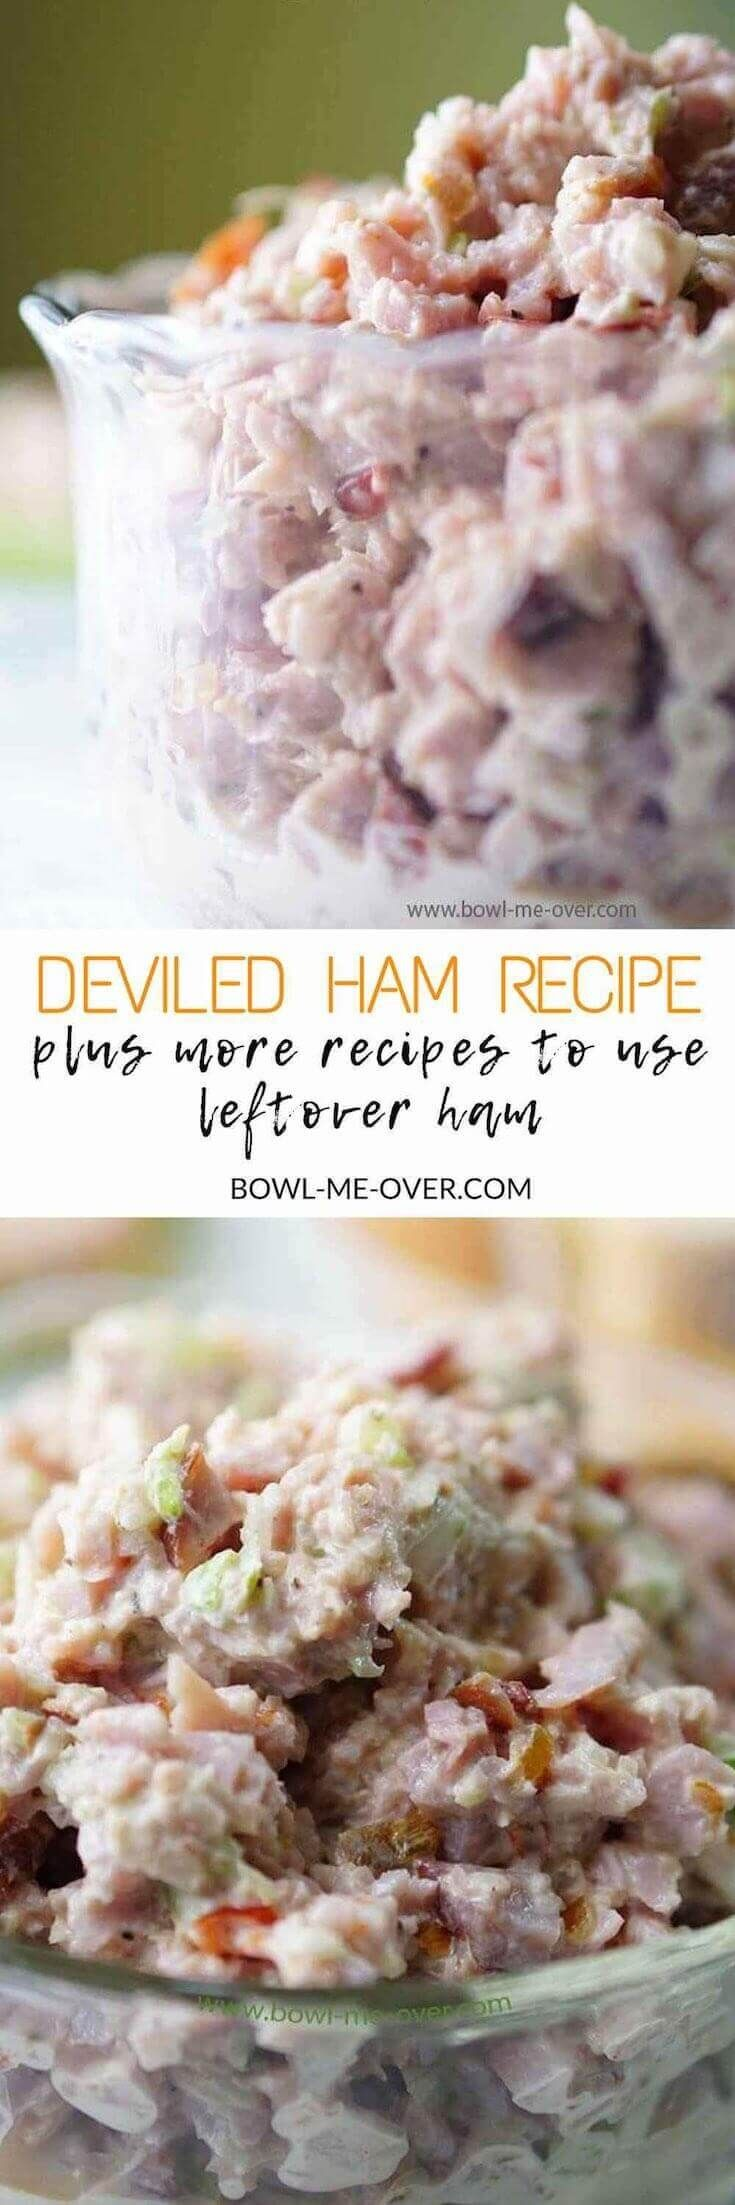 What to do with leftover ham? Use it to make Deviled Ham - salty and sweet, creamy and crunchy. Delicious on bread or crackers. #leftovers #hamsalad #deviledham #bowlmeover via @bowlmeover